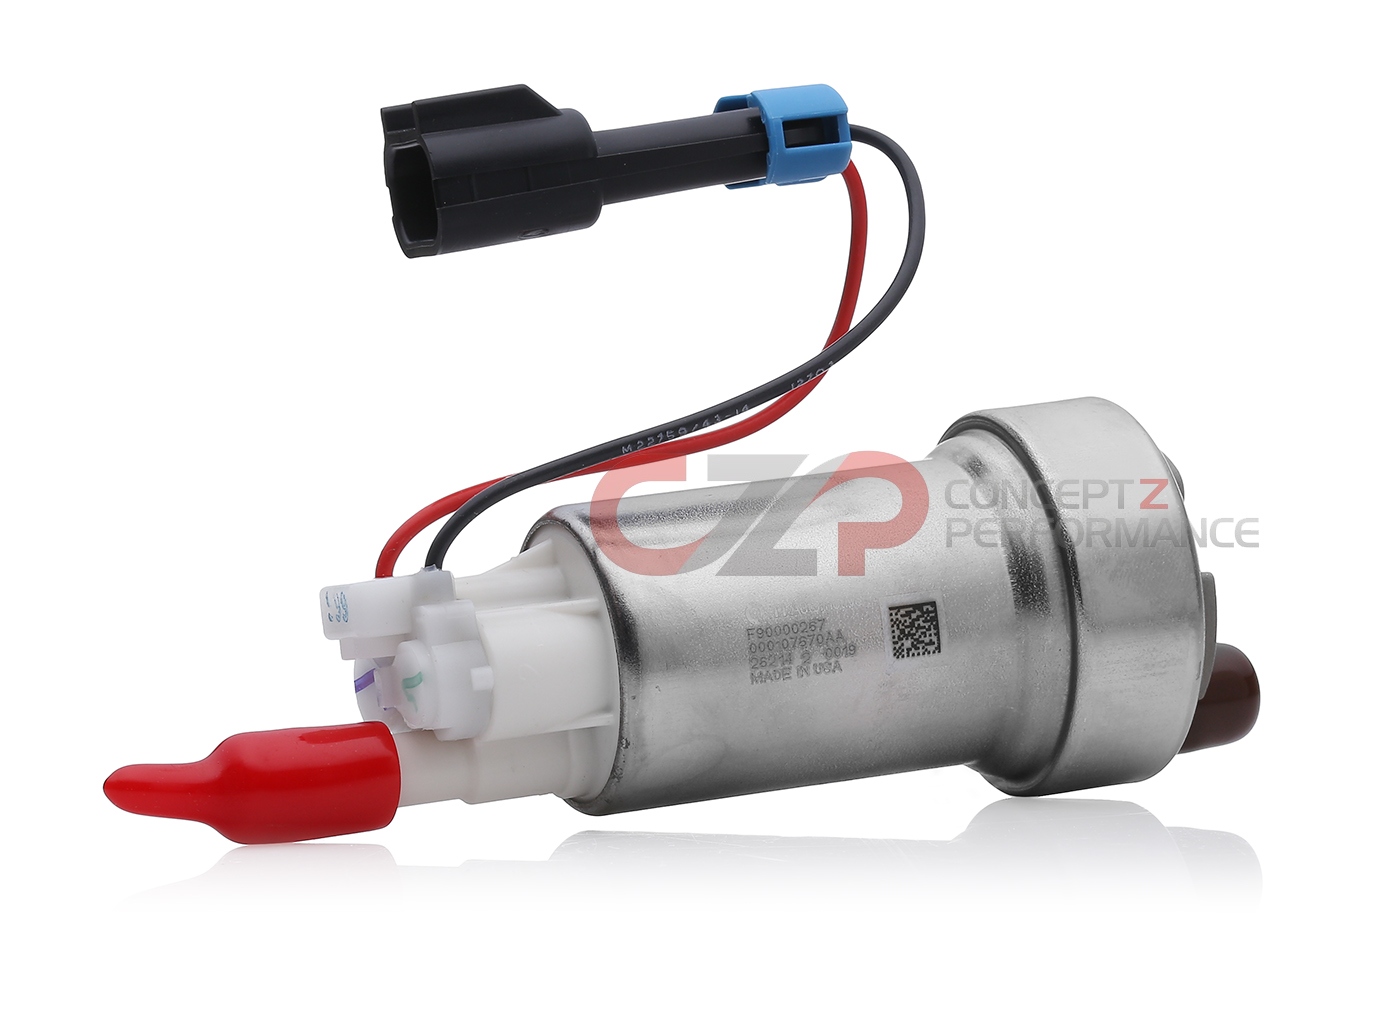 Walbro 485 Universal High Pressure Fuel Pump - Ethanol E85  450 LPH F90000267 - IN STOCK!!!